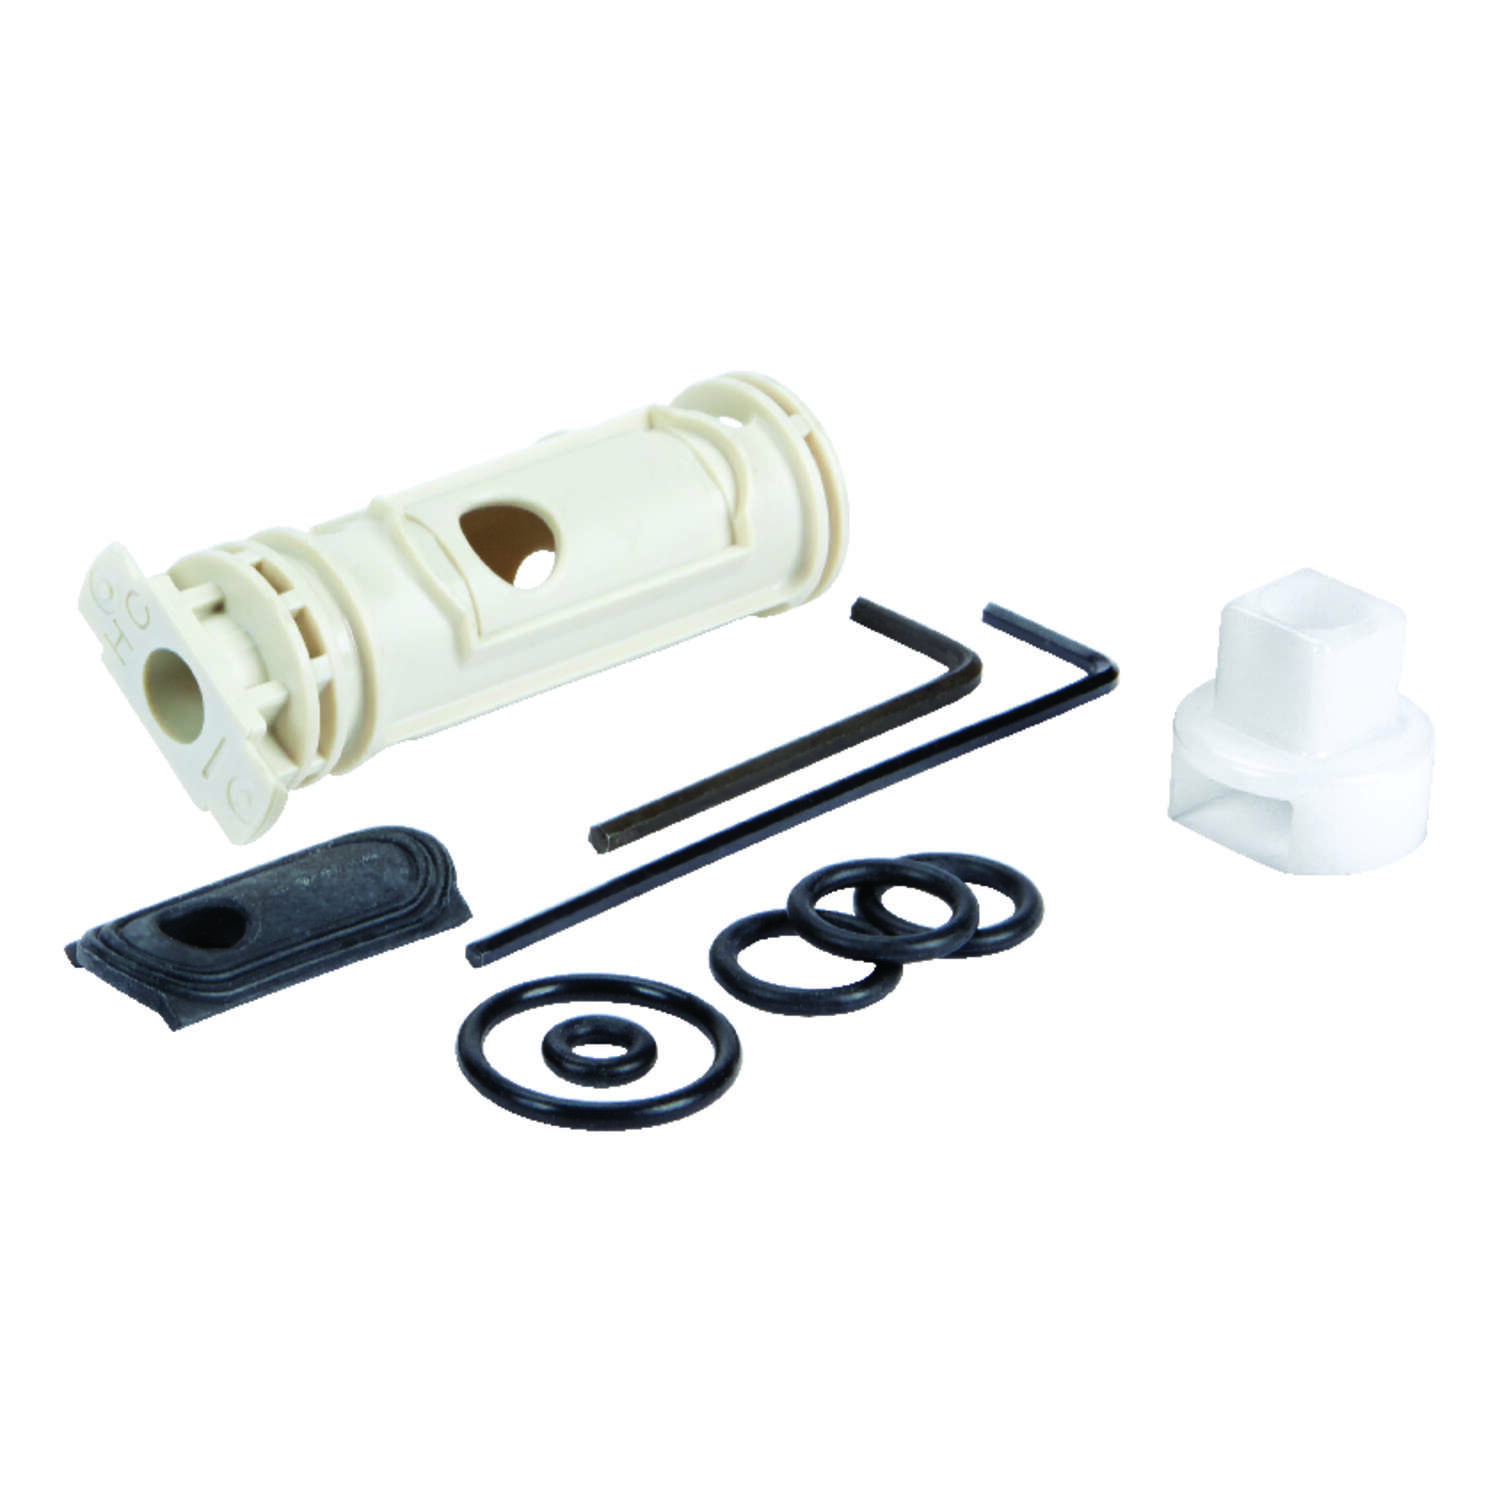 Moen  Hot and Cold  Posi-Temp Cartridge Repair Kit  For Moen